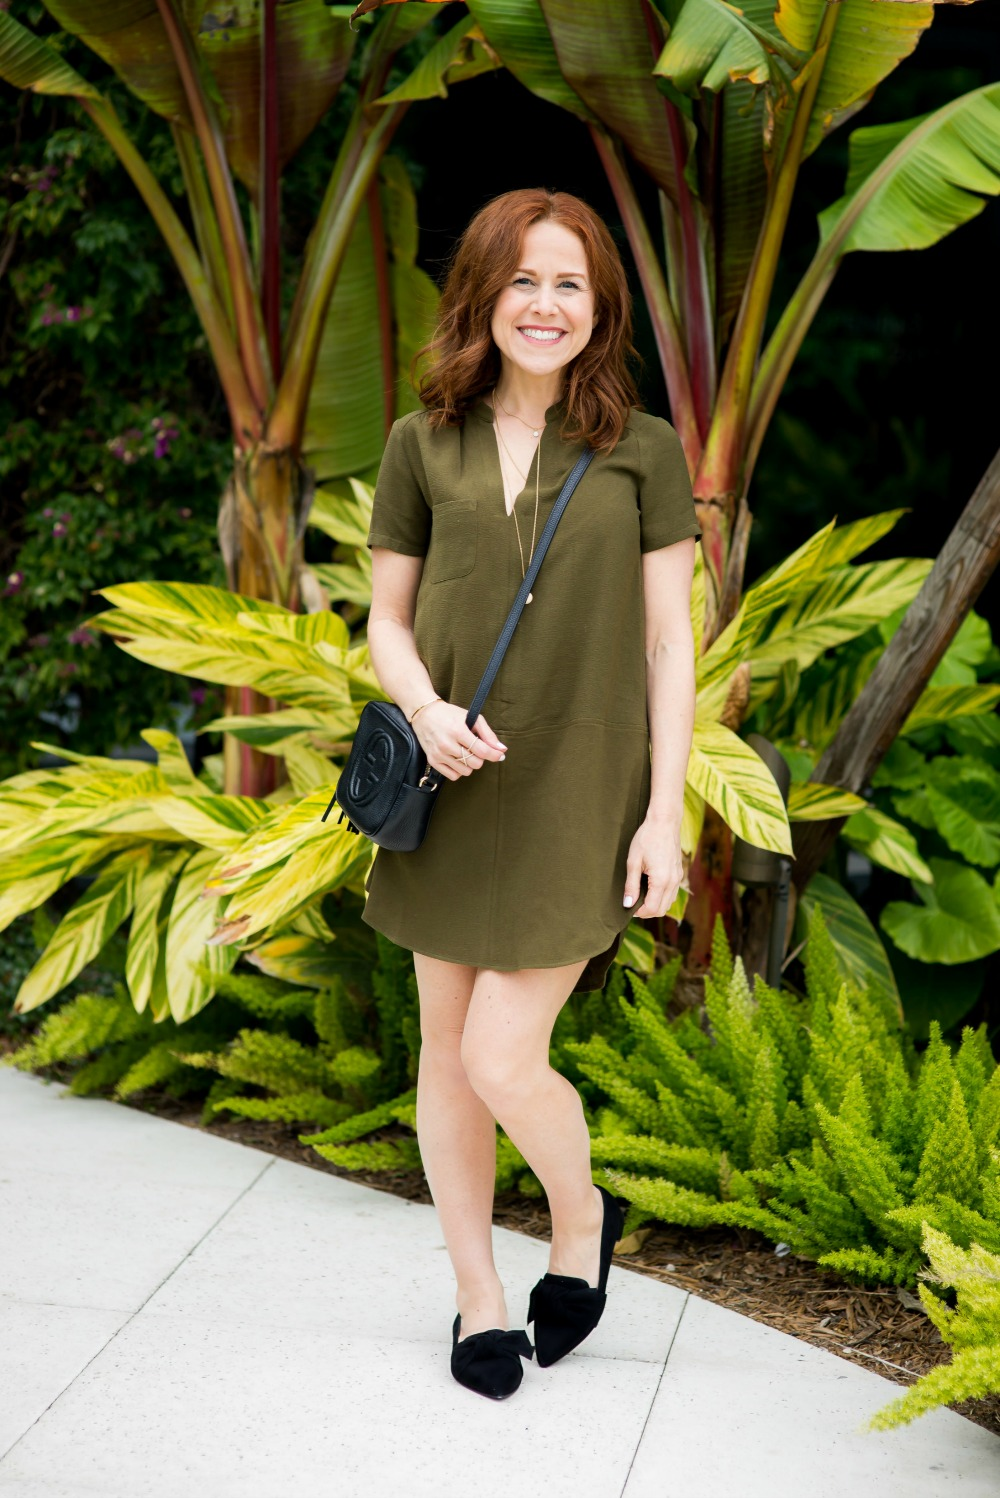 Four Ways to Wear this $54 Dress - The $46 Versatile Dress You Need In Your Closet by popular Florida style blogger The odern Savvy